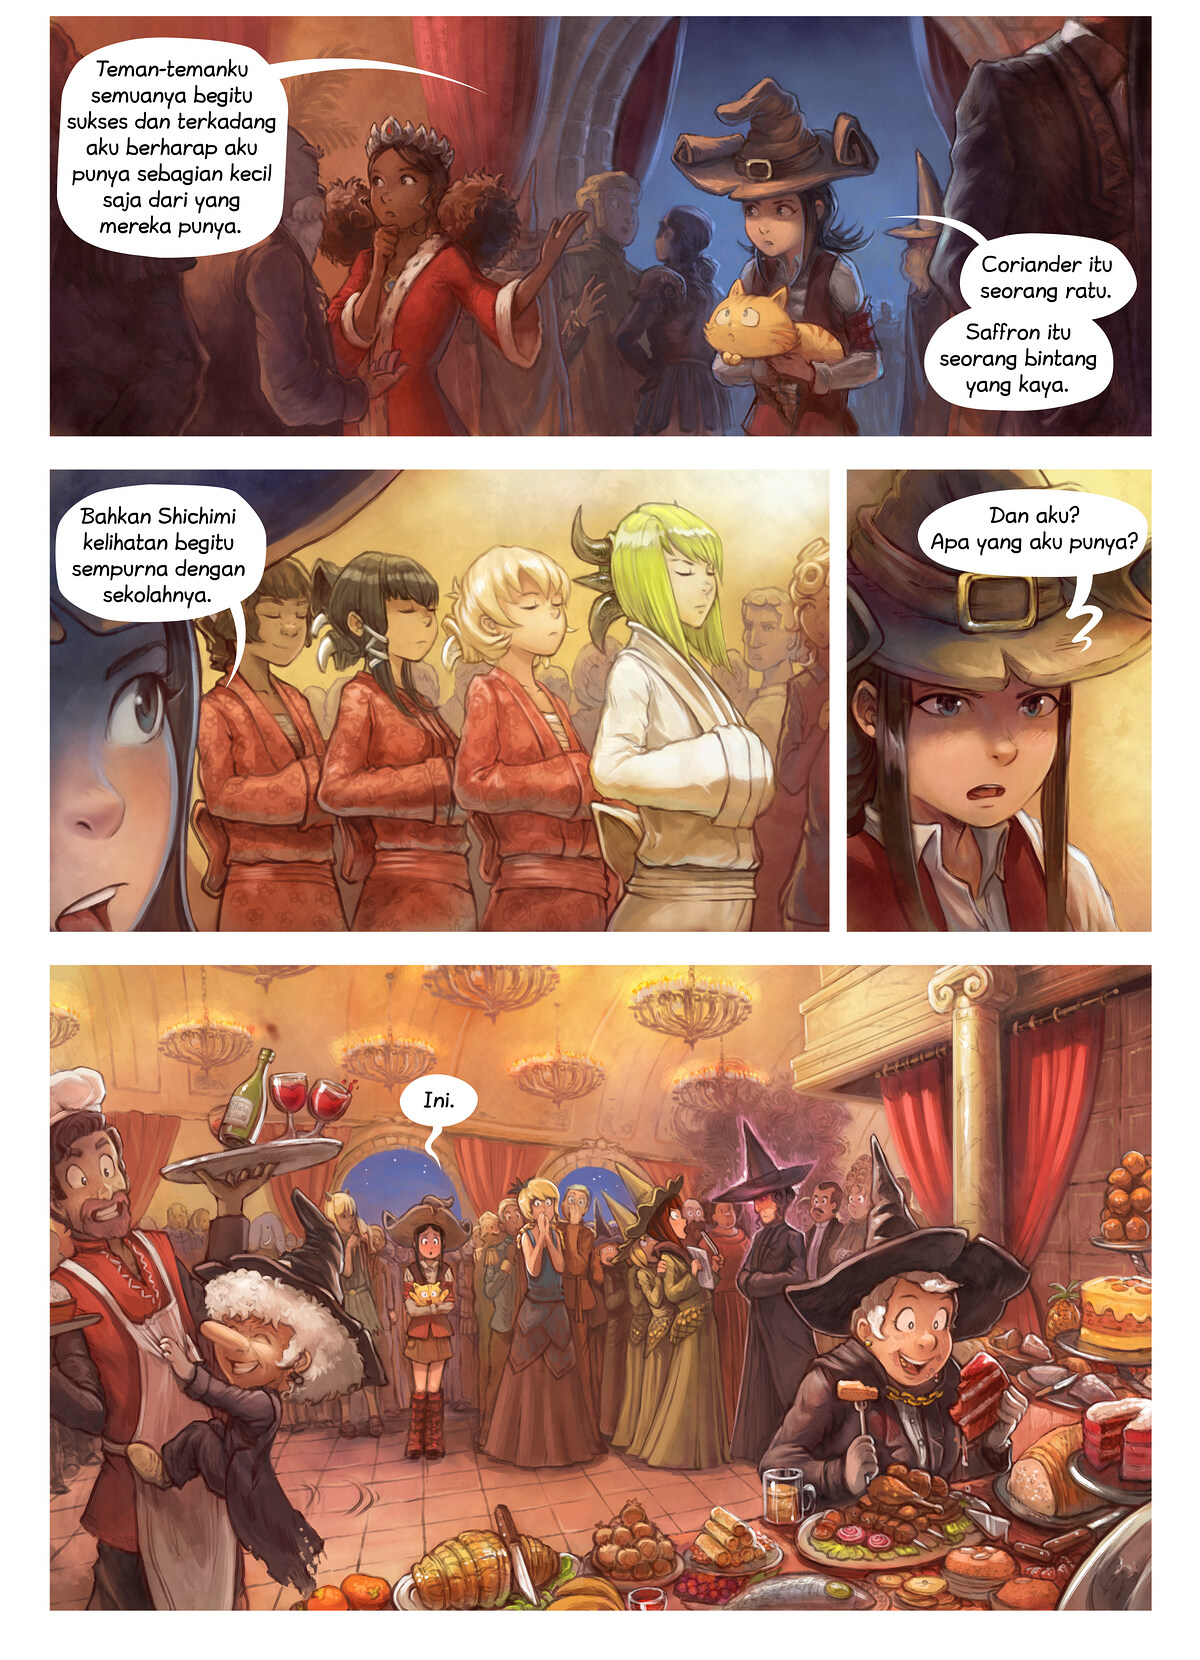 A webcomic page of Pepper&Carrot, episode 28 [id], halaman 5